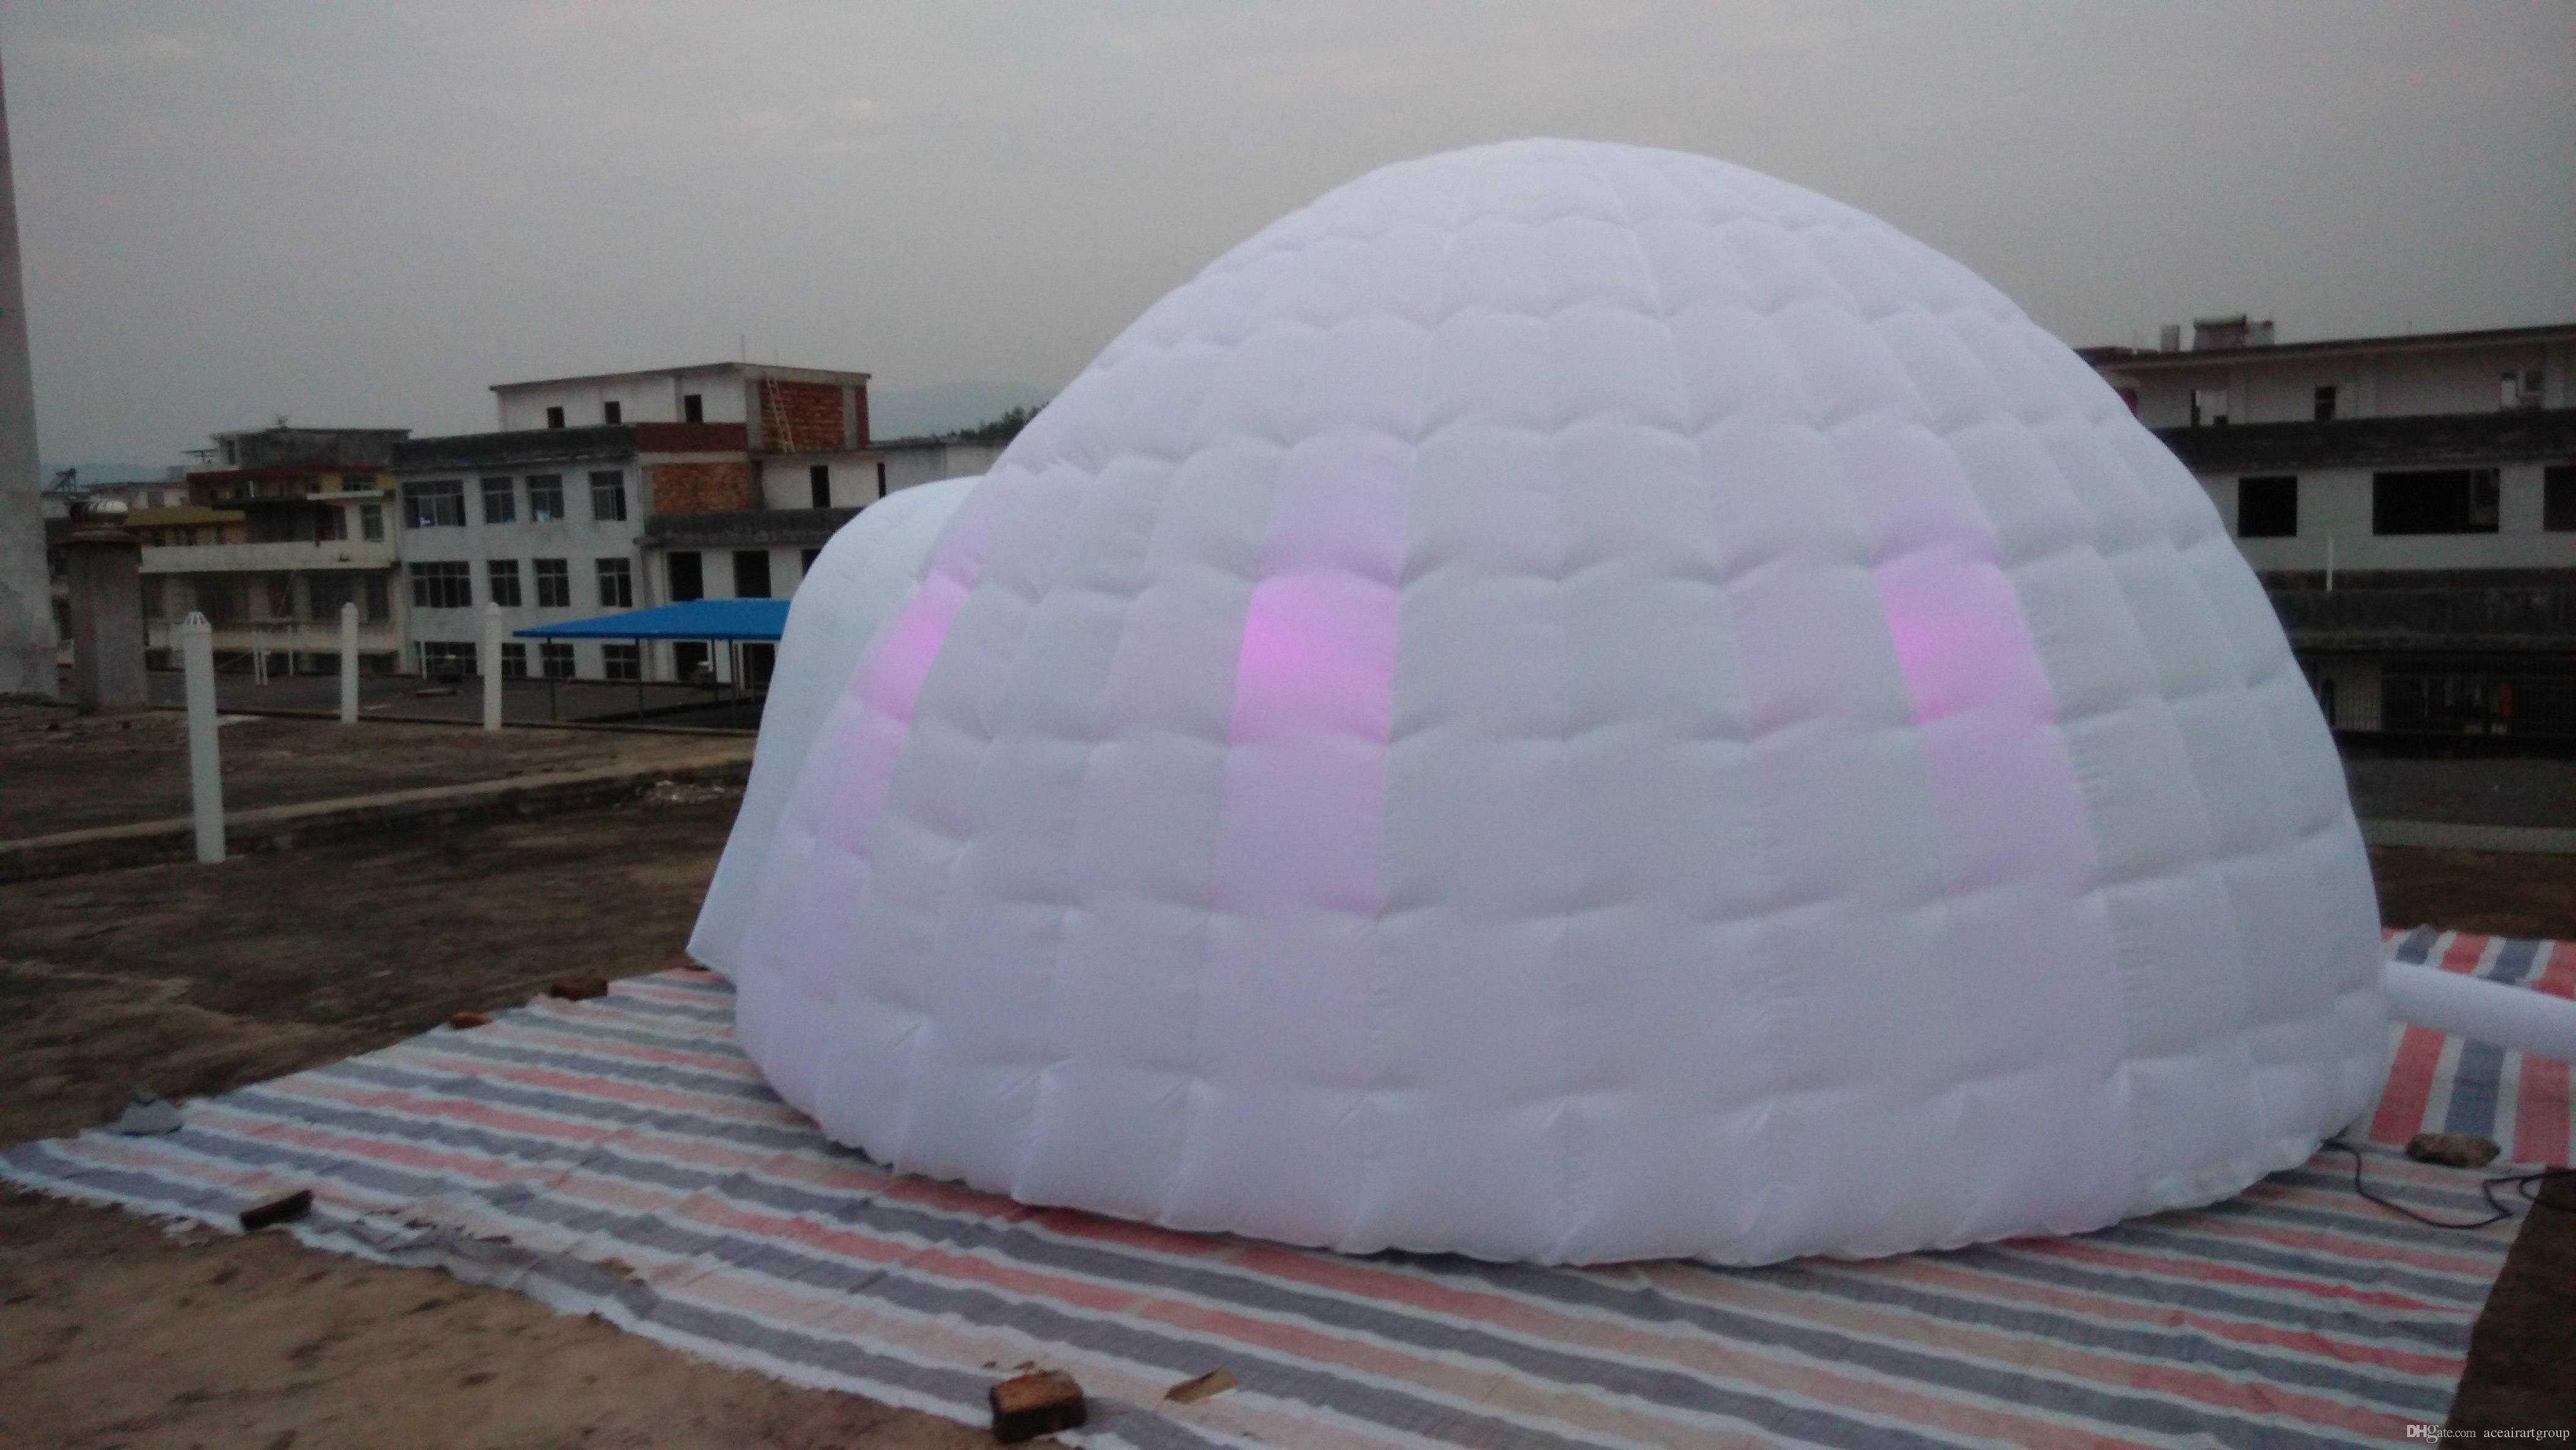 2018 Globular Inflatable Dome Tent Inflatable Igloo Tent For Reside With Lighting From Aceairartgroup $994.98 | Dhgate.Com & 2018 Globular Inflatable Dome Tent Inflatable Igloo Tent For ...